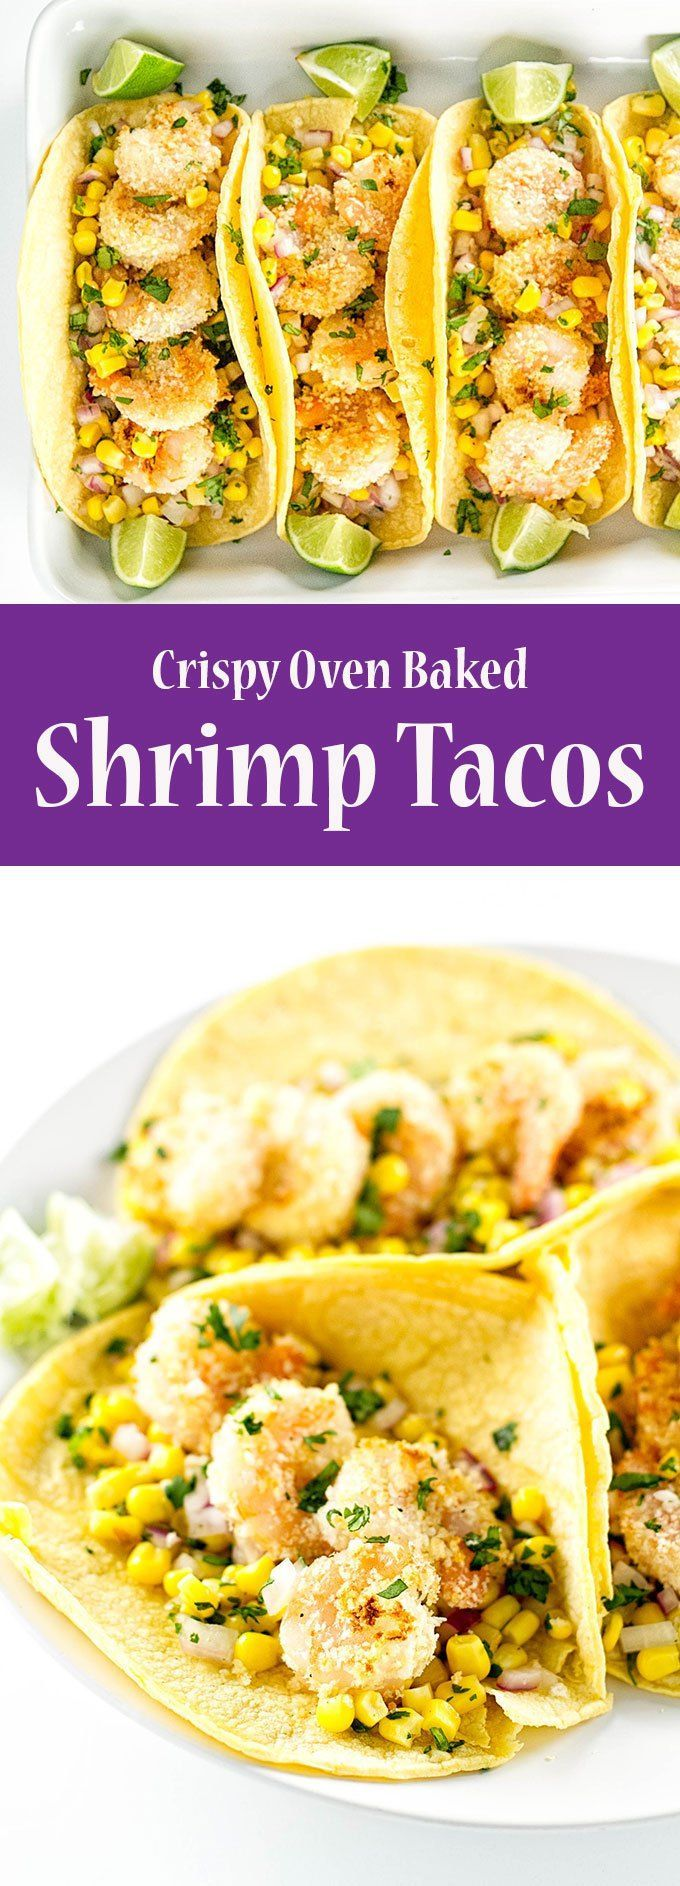 Easy shrimp tacos with corn salsa | girlgonegourmet.com